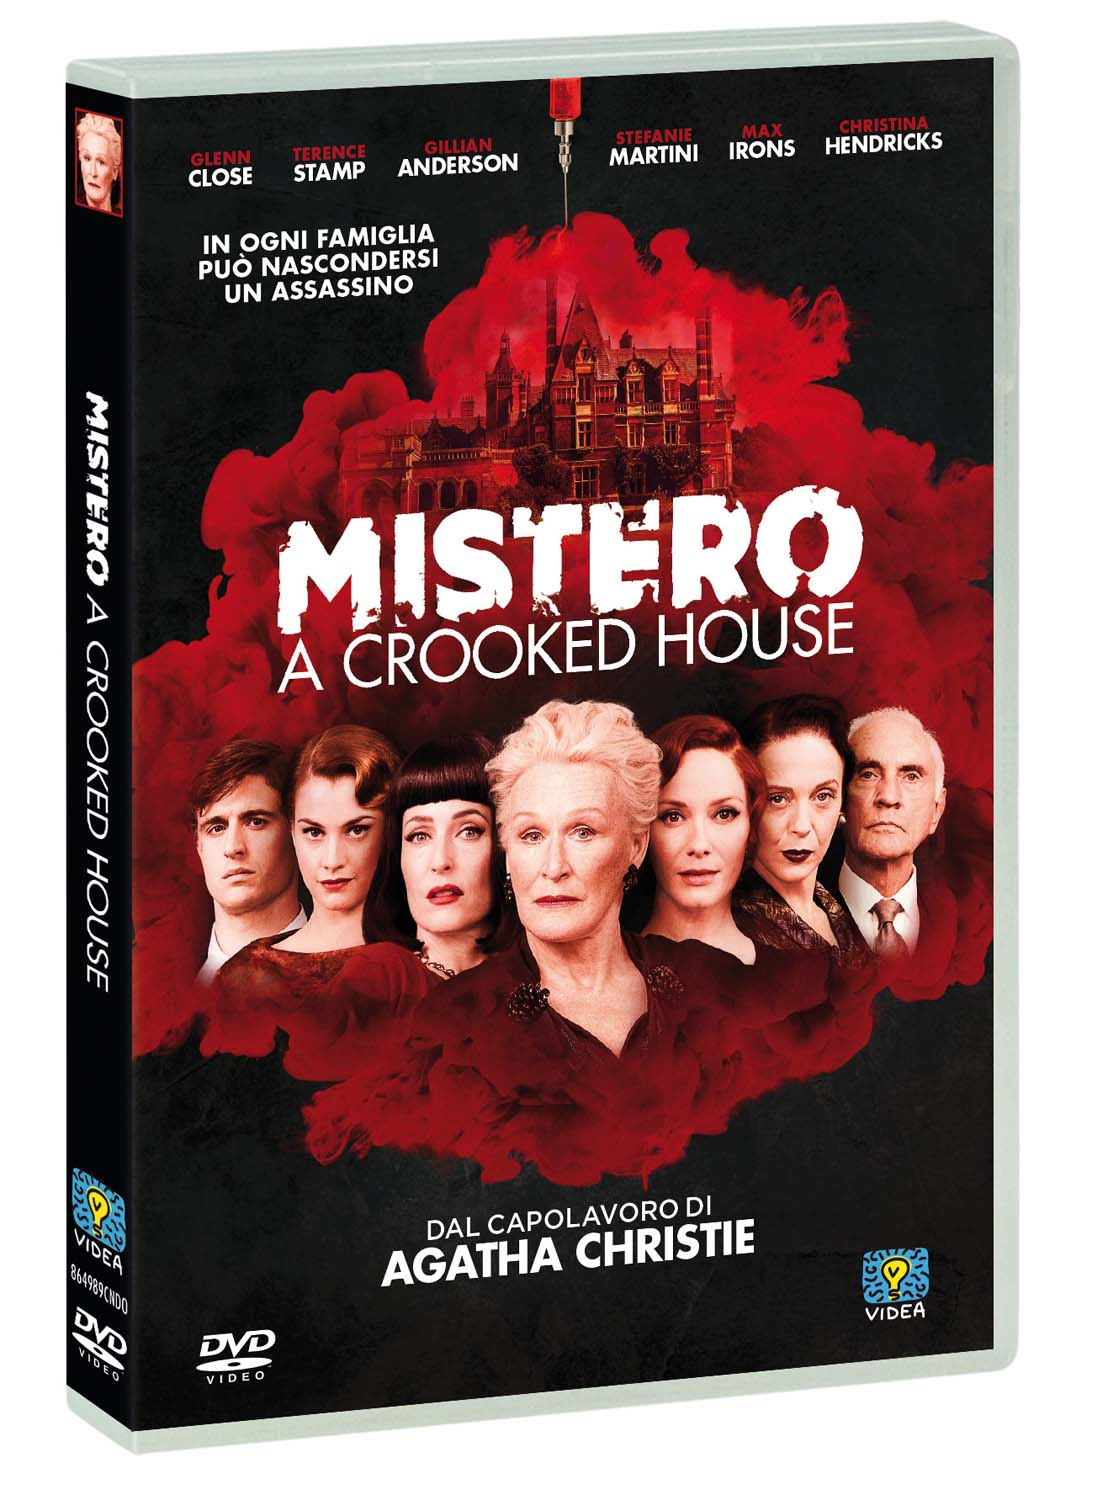 MISTERO - A CROOKED HOUSE (DVD)